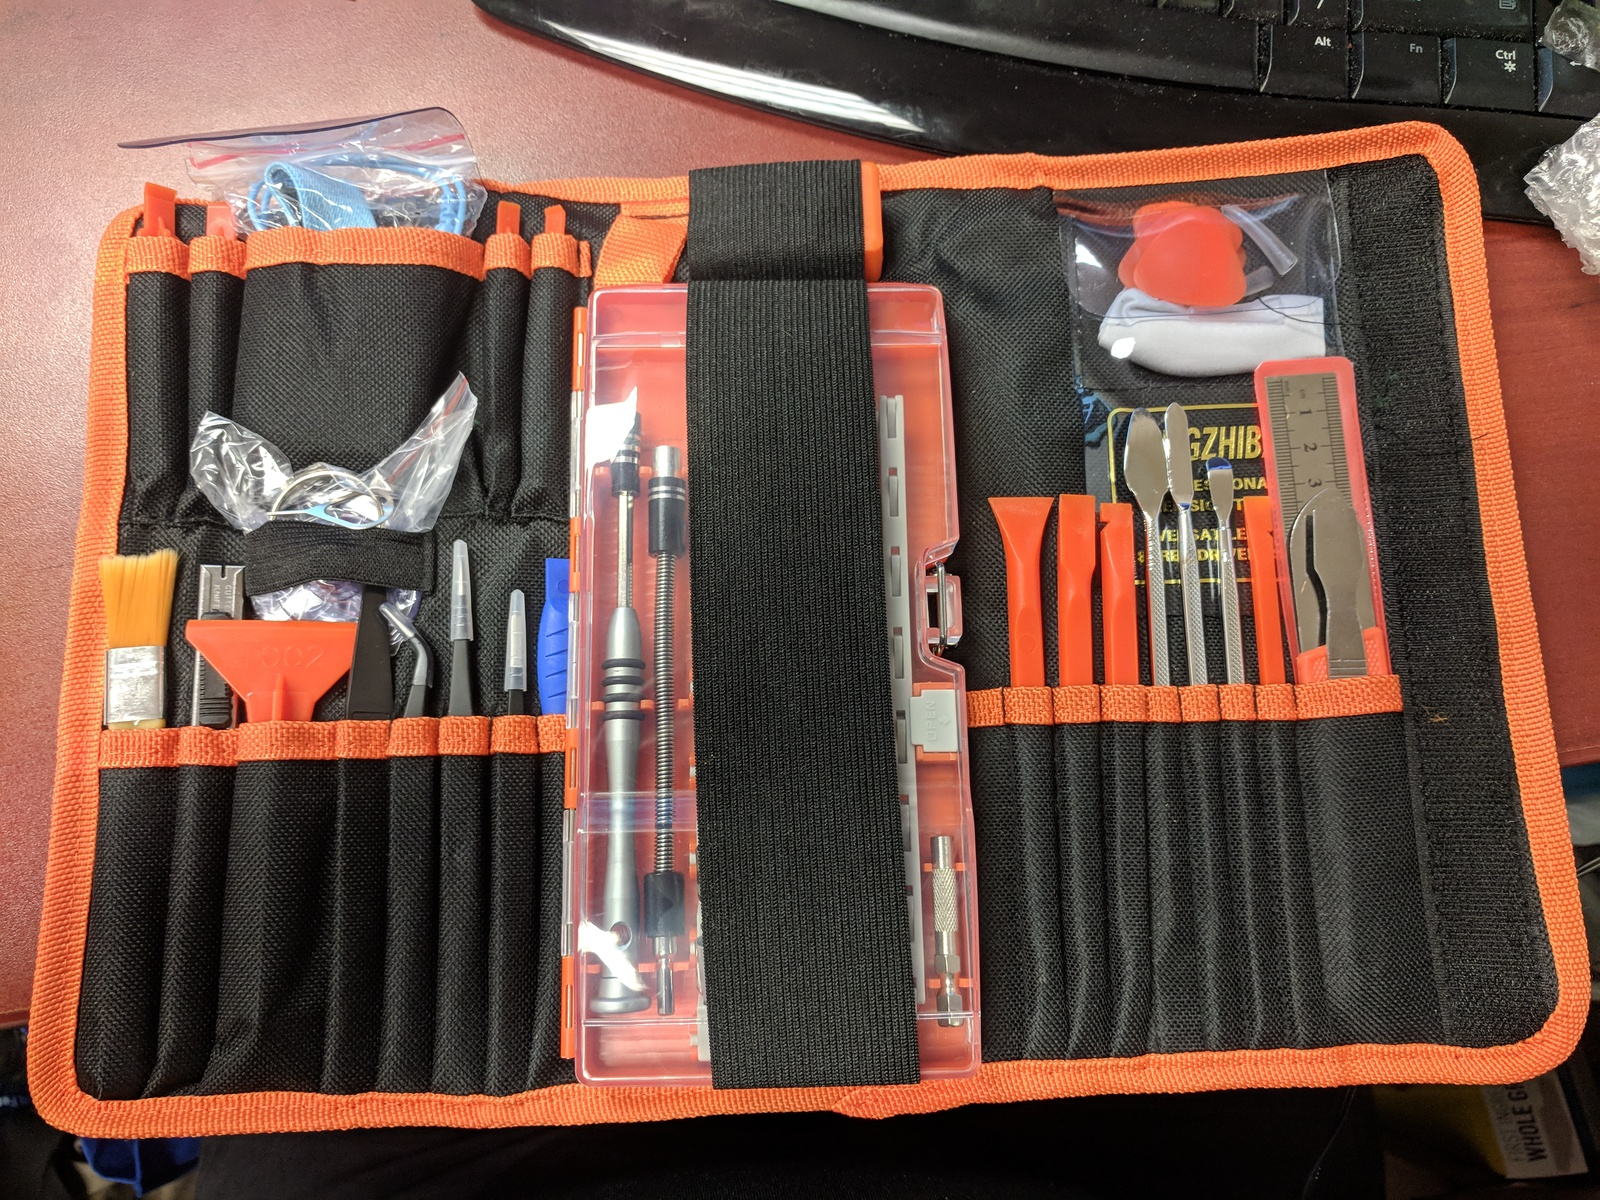 This will be last repair kit I will need to buy...